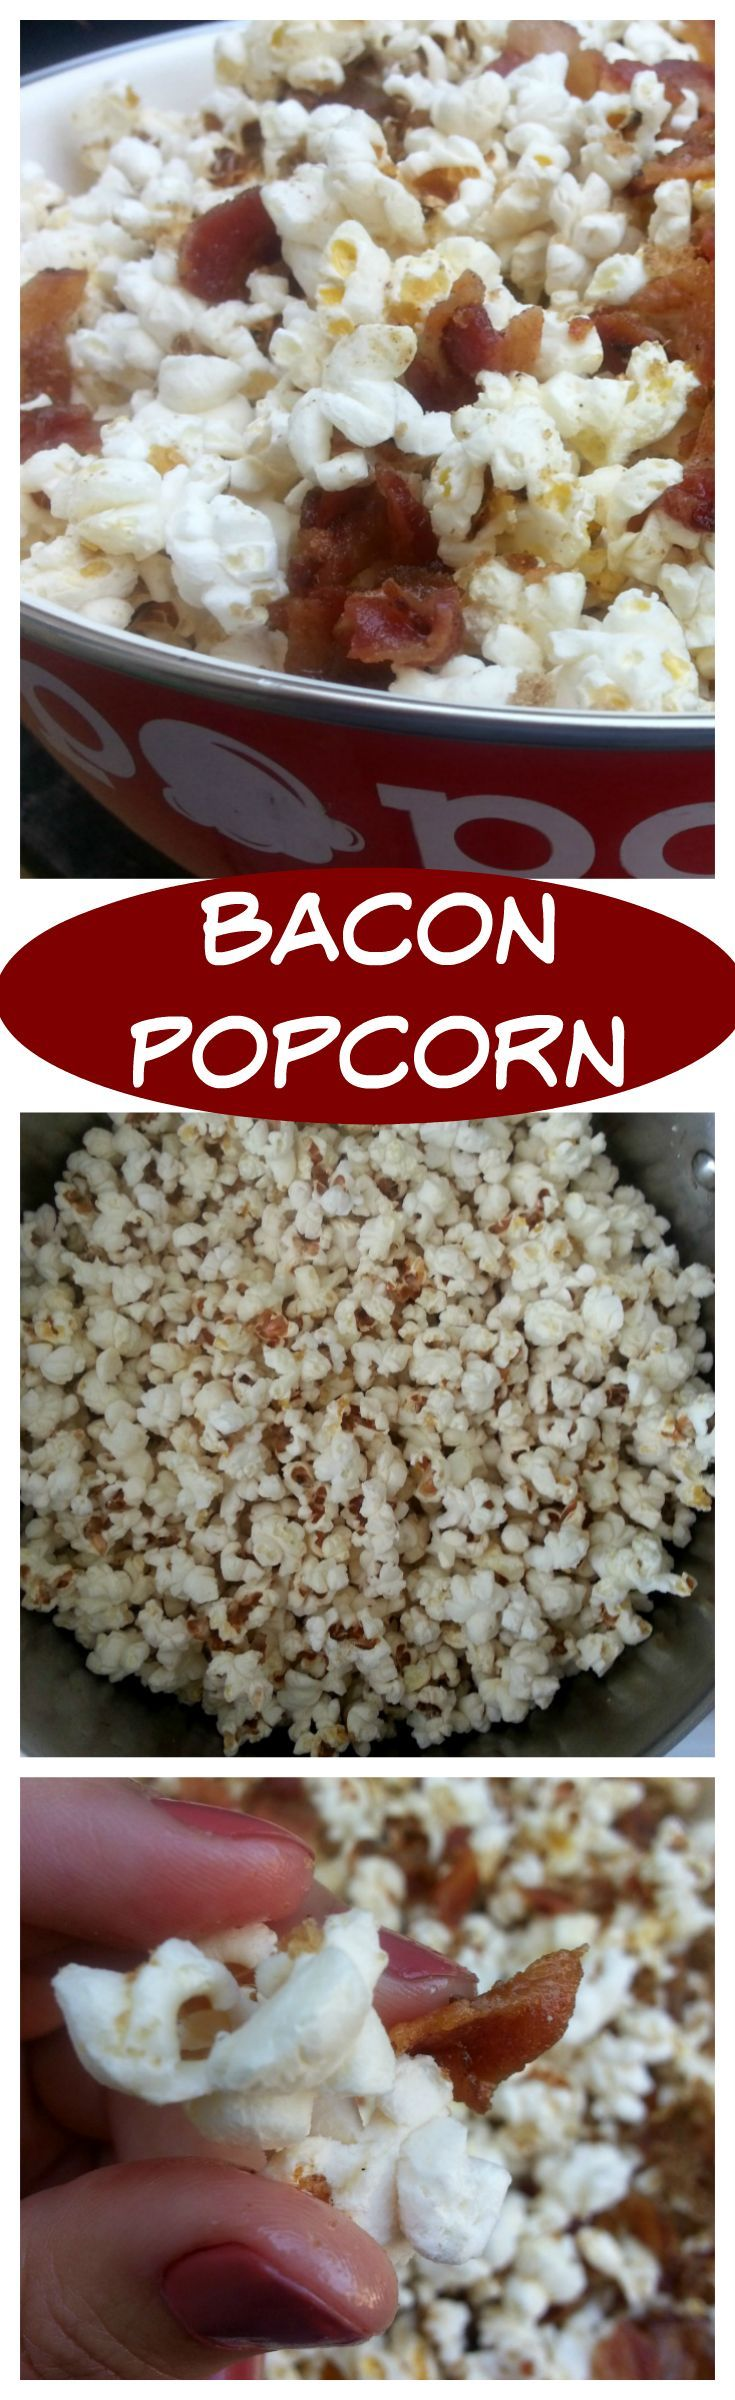 Bacon Popcorn - sweet and spice and everything nice. This recipe is a keeper for any foodie or bacon lover. Enjoy! - by Mama Maggie's Kitchen #bacon #baconpopcorn #popcorn #appetizer #gameday #recipe